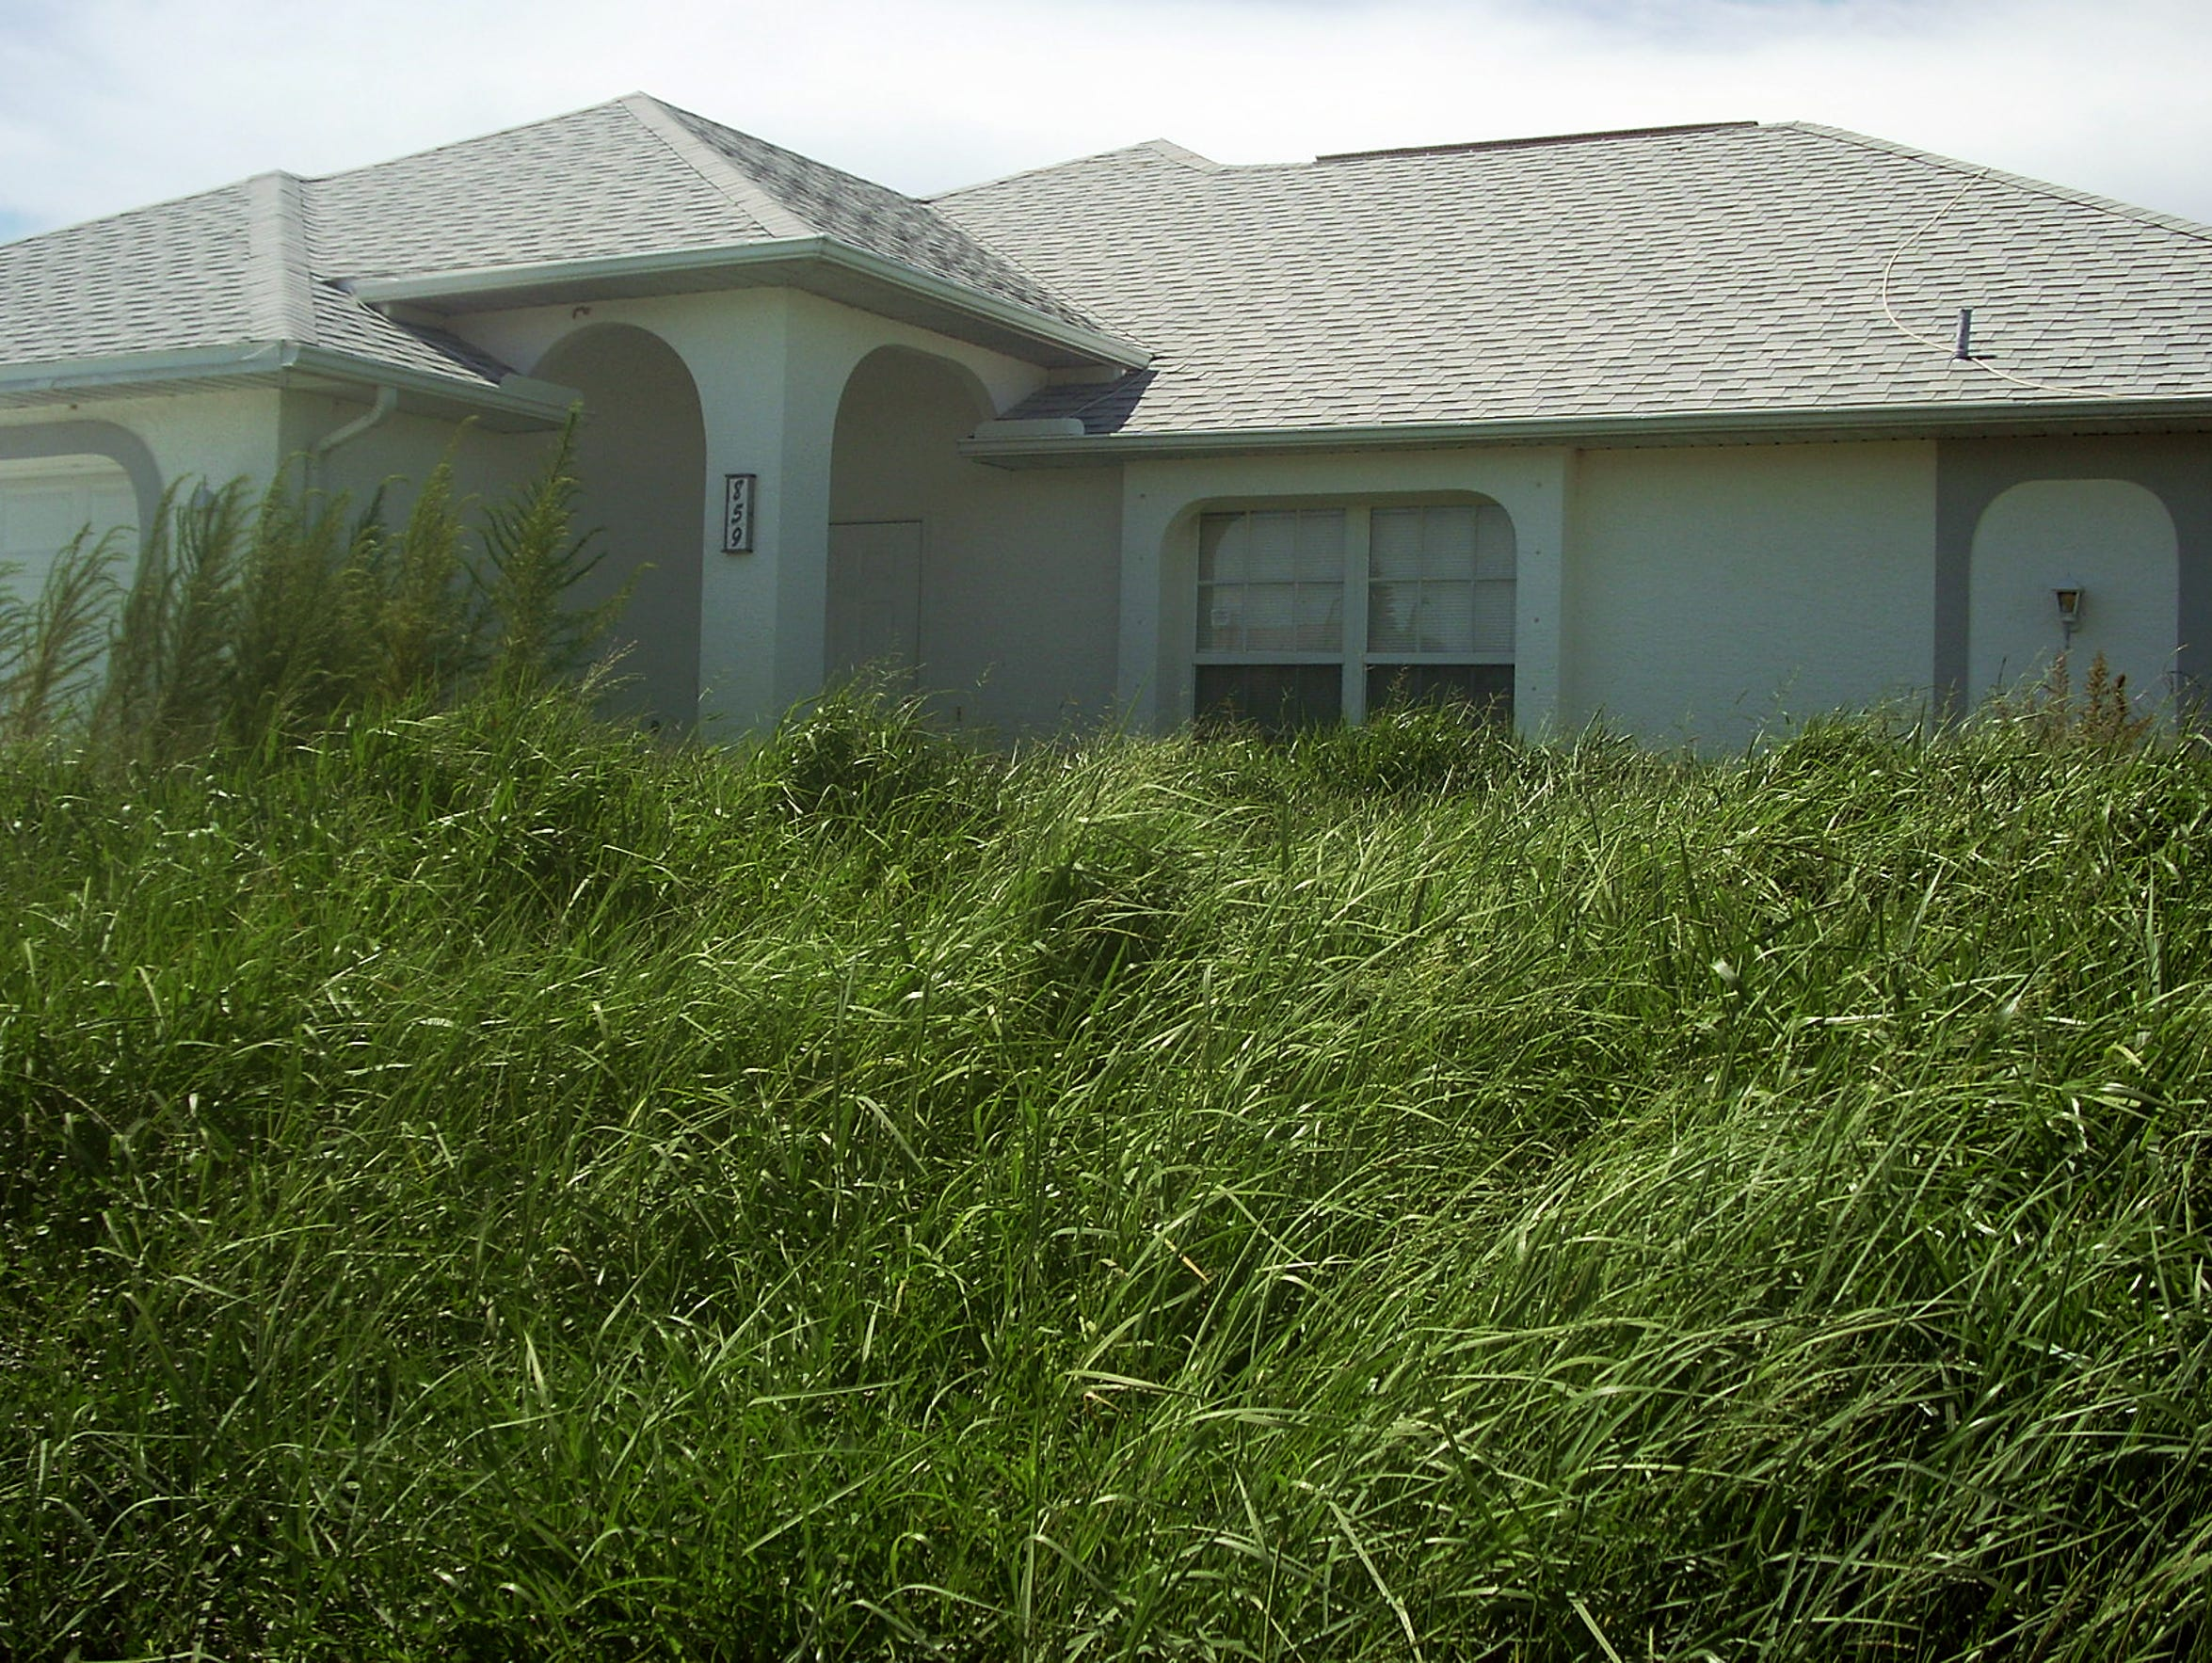 In this file photo, grass and weeds overtake a home